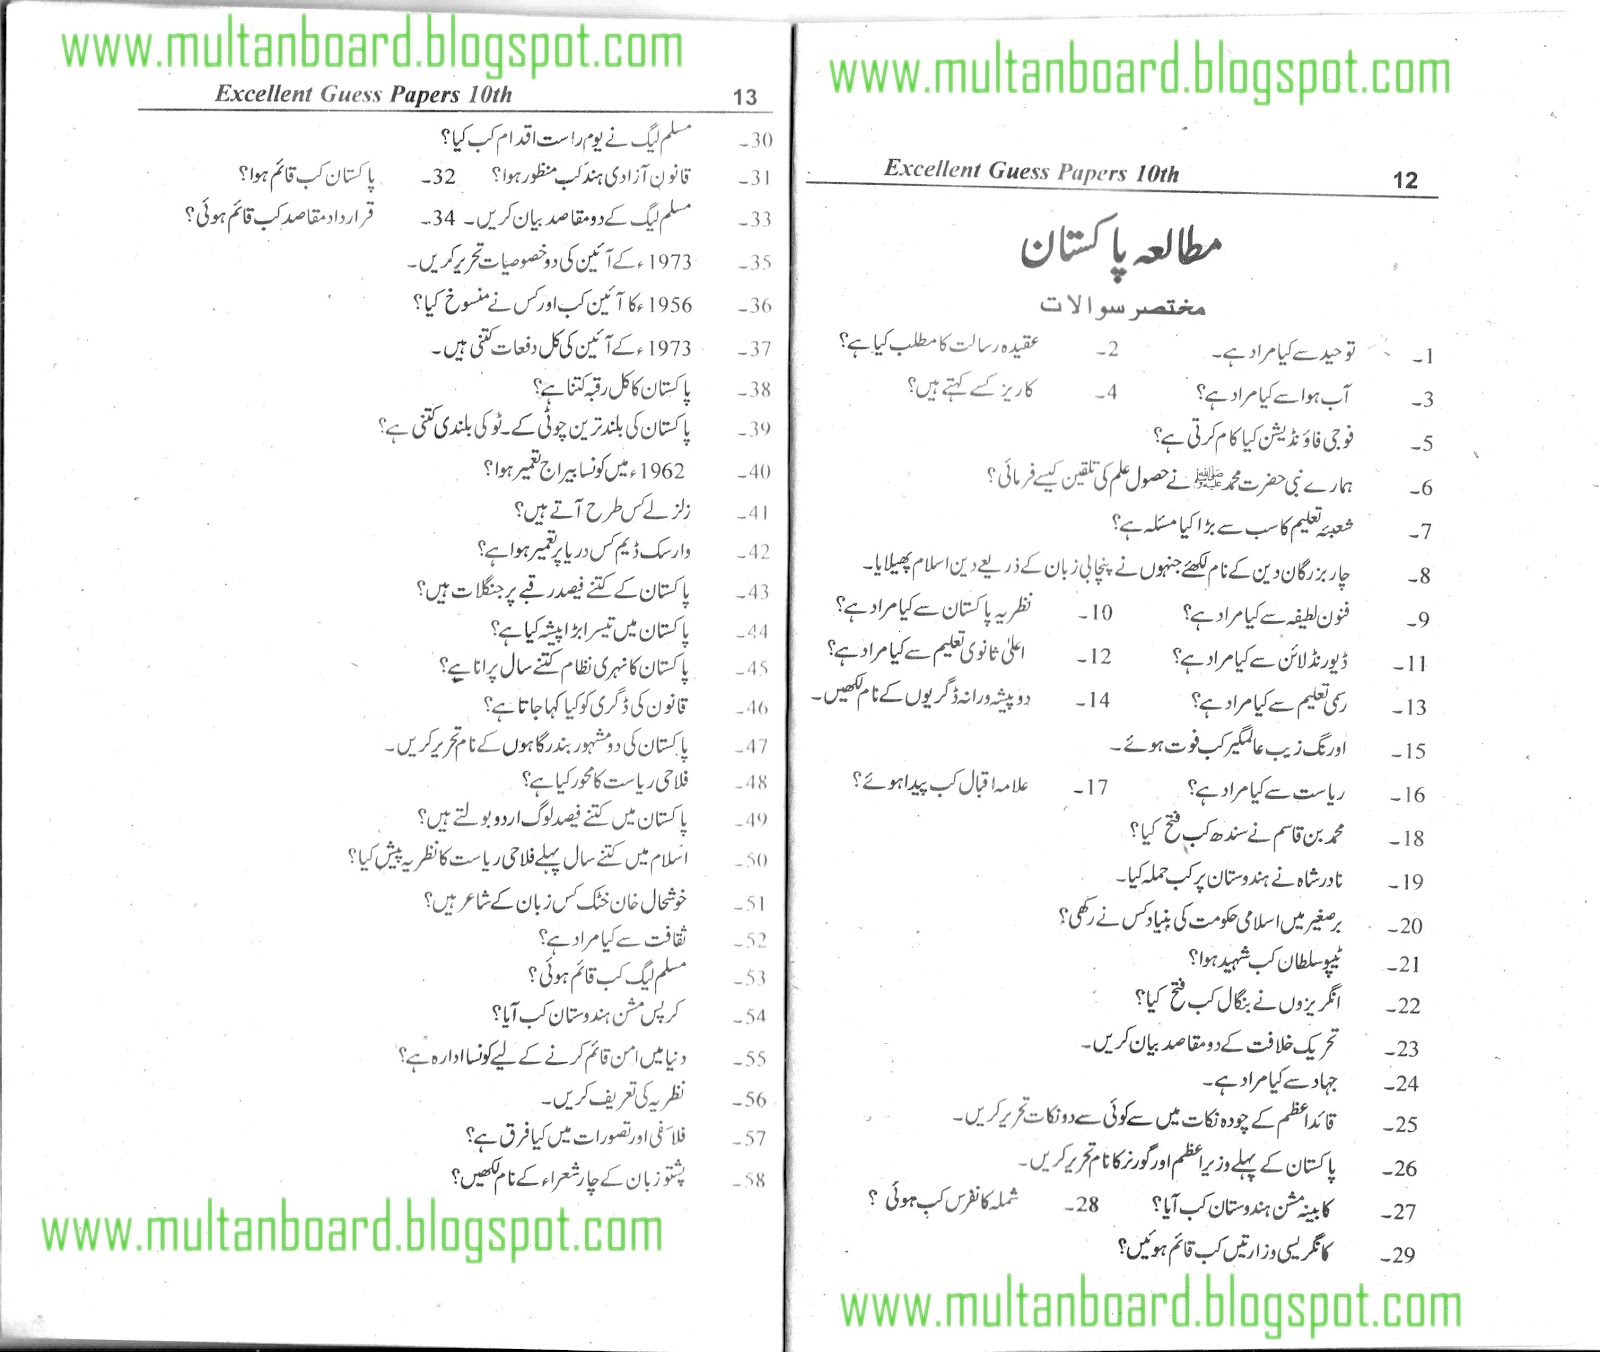 lahore board model papers 2010